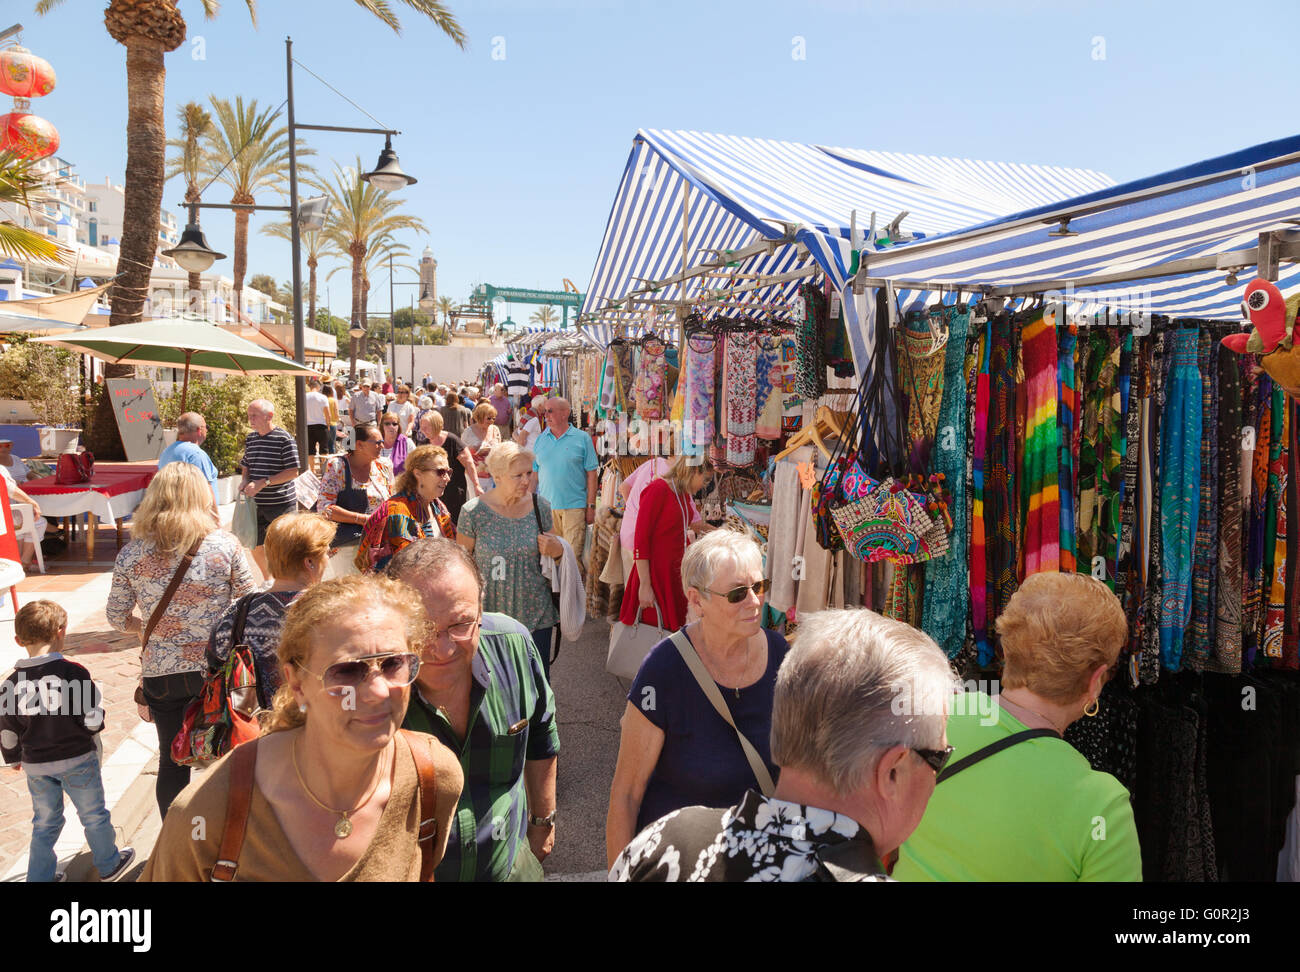 People shopping at Estepona market, Estepona, Costa del Sol, Andalusia, Spain Europe - Stock Image